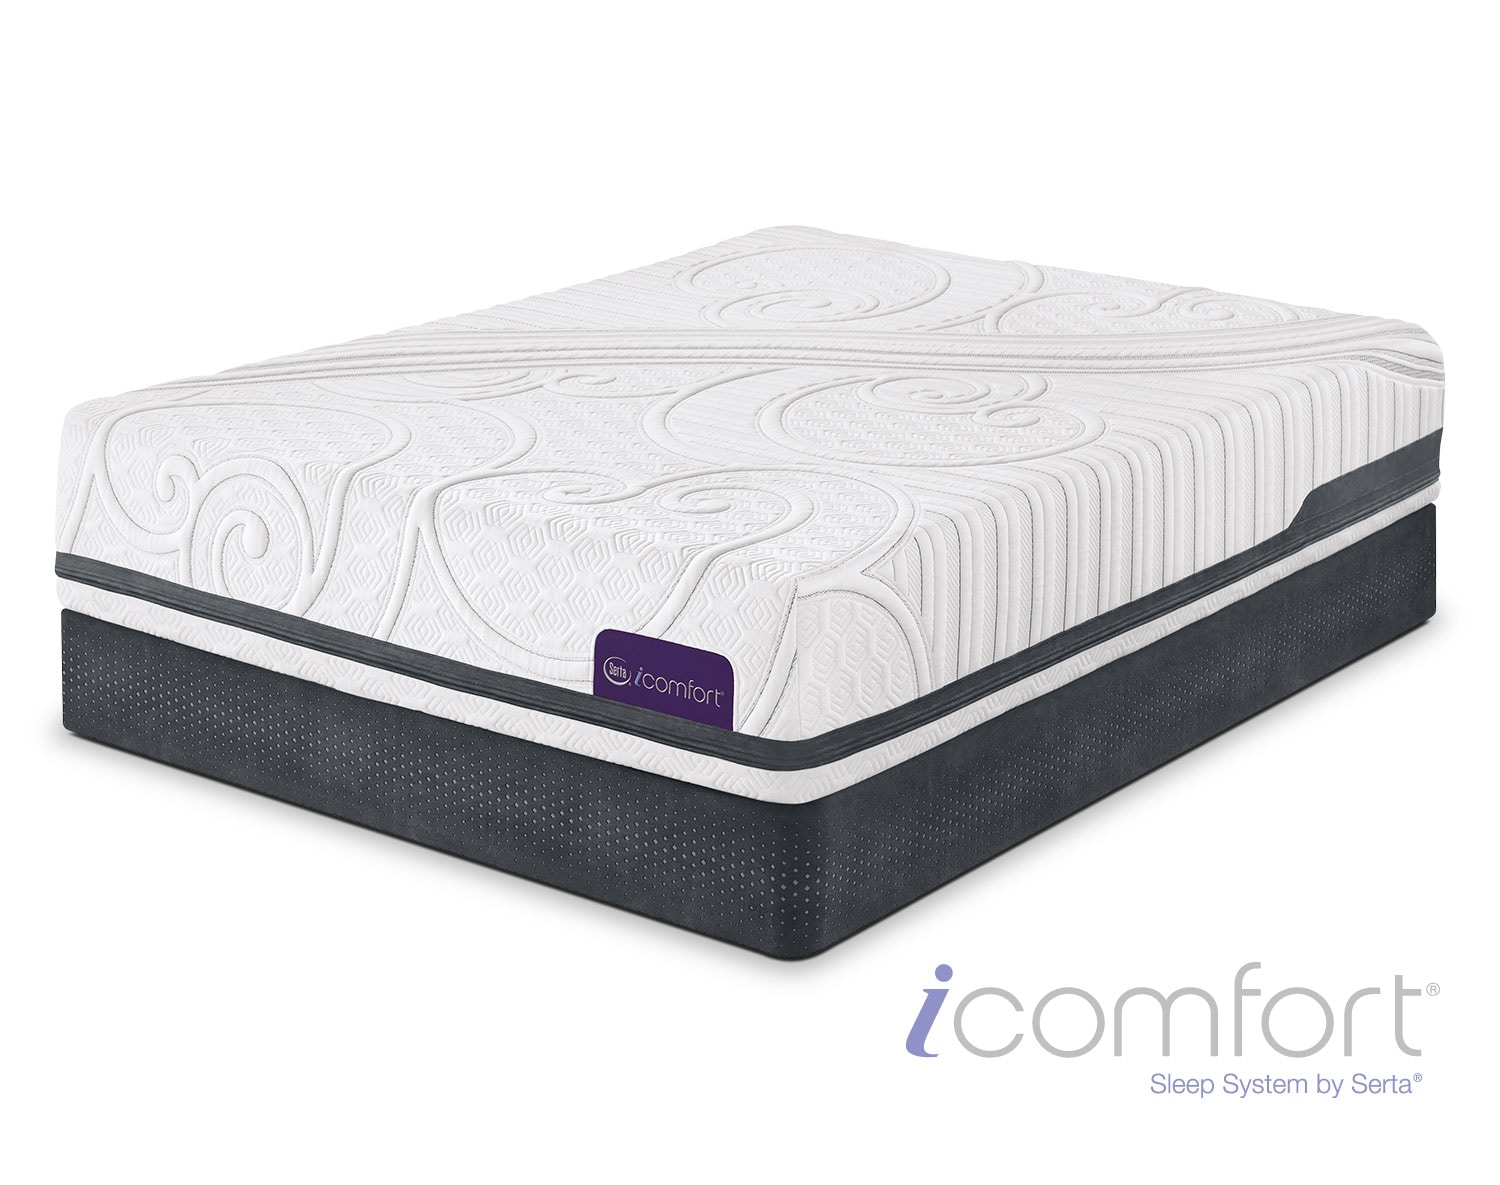 The iComfort Prodigy III Plush Mattress Collection